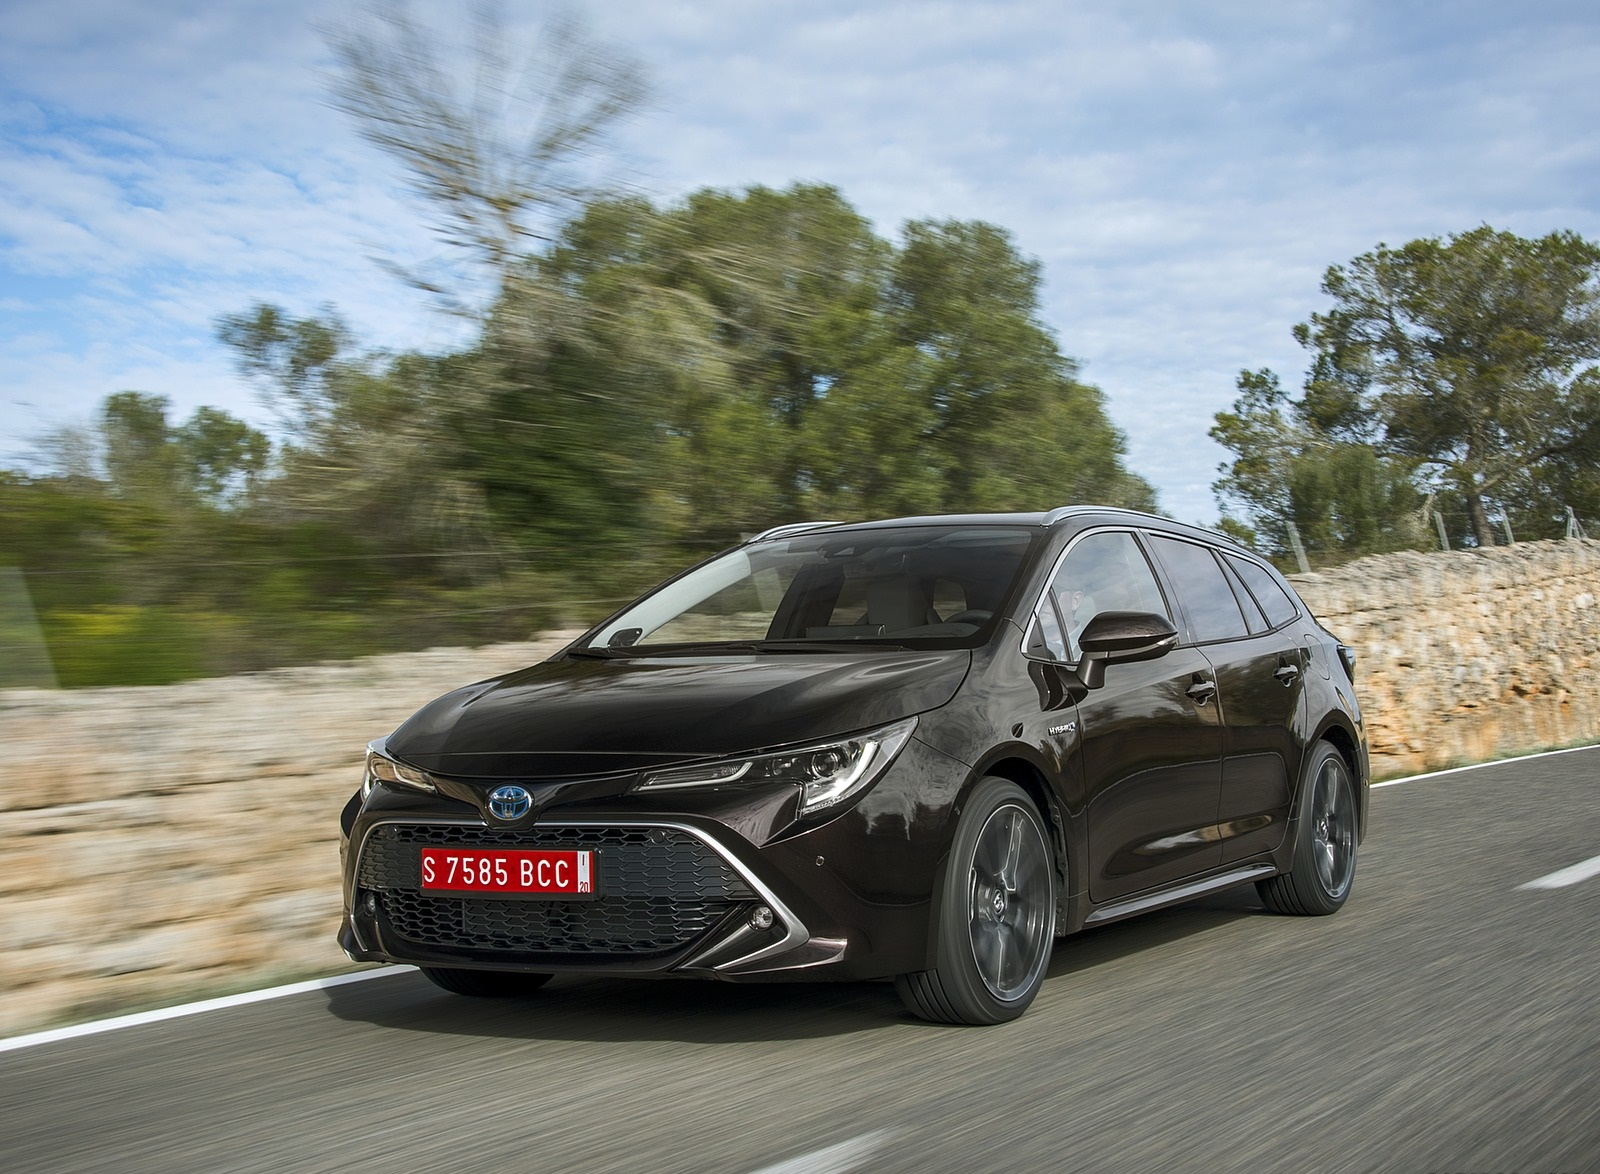 2019 Toyota Corolla Touring Sports 2.0L Brown (EU-Spec) Front Three-Quarter Wallpapers (9)